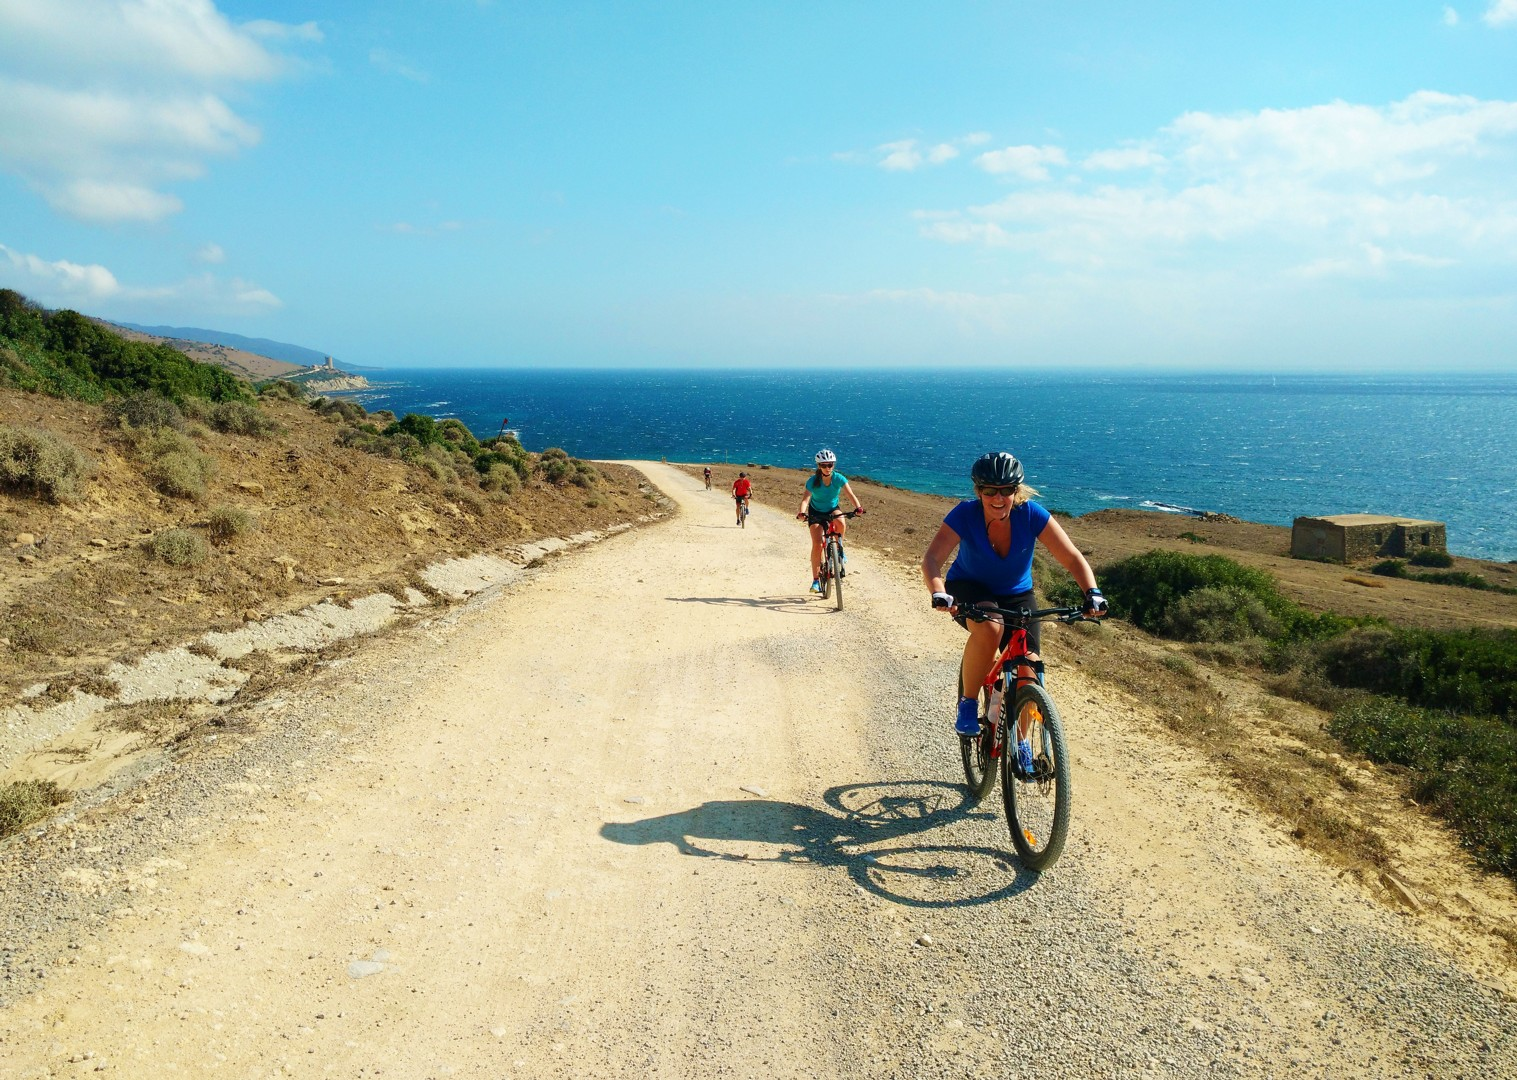 sunny-spanish-holiday-south-of-spain-cycling-family-self-guided.jpg - Southern Spain - Coastal Adventurer - Self-Guided Family Cycling Holiday - Family Cycling